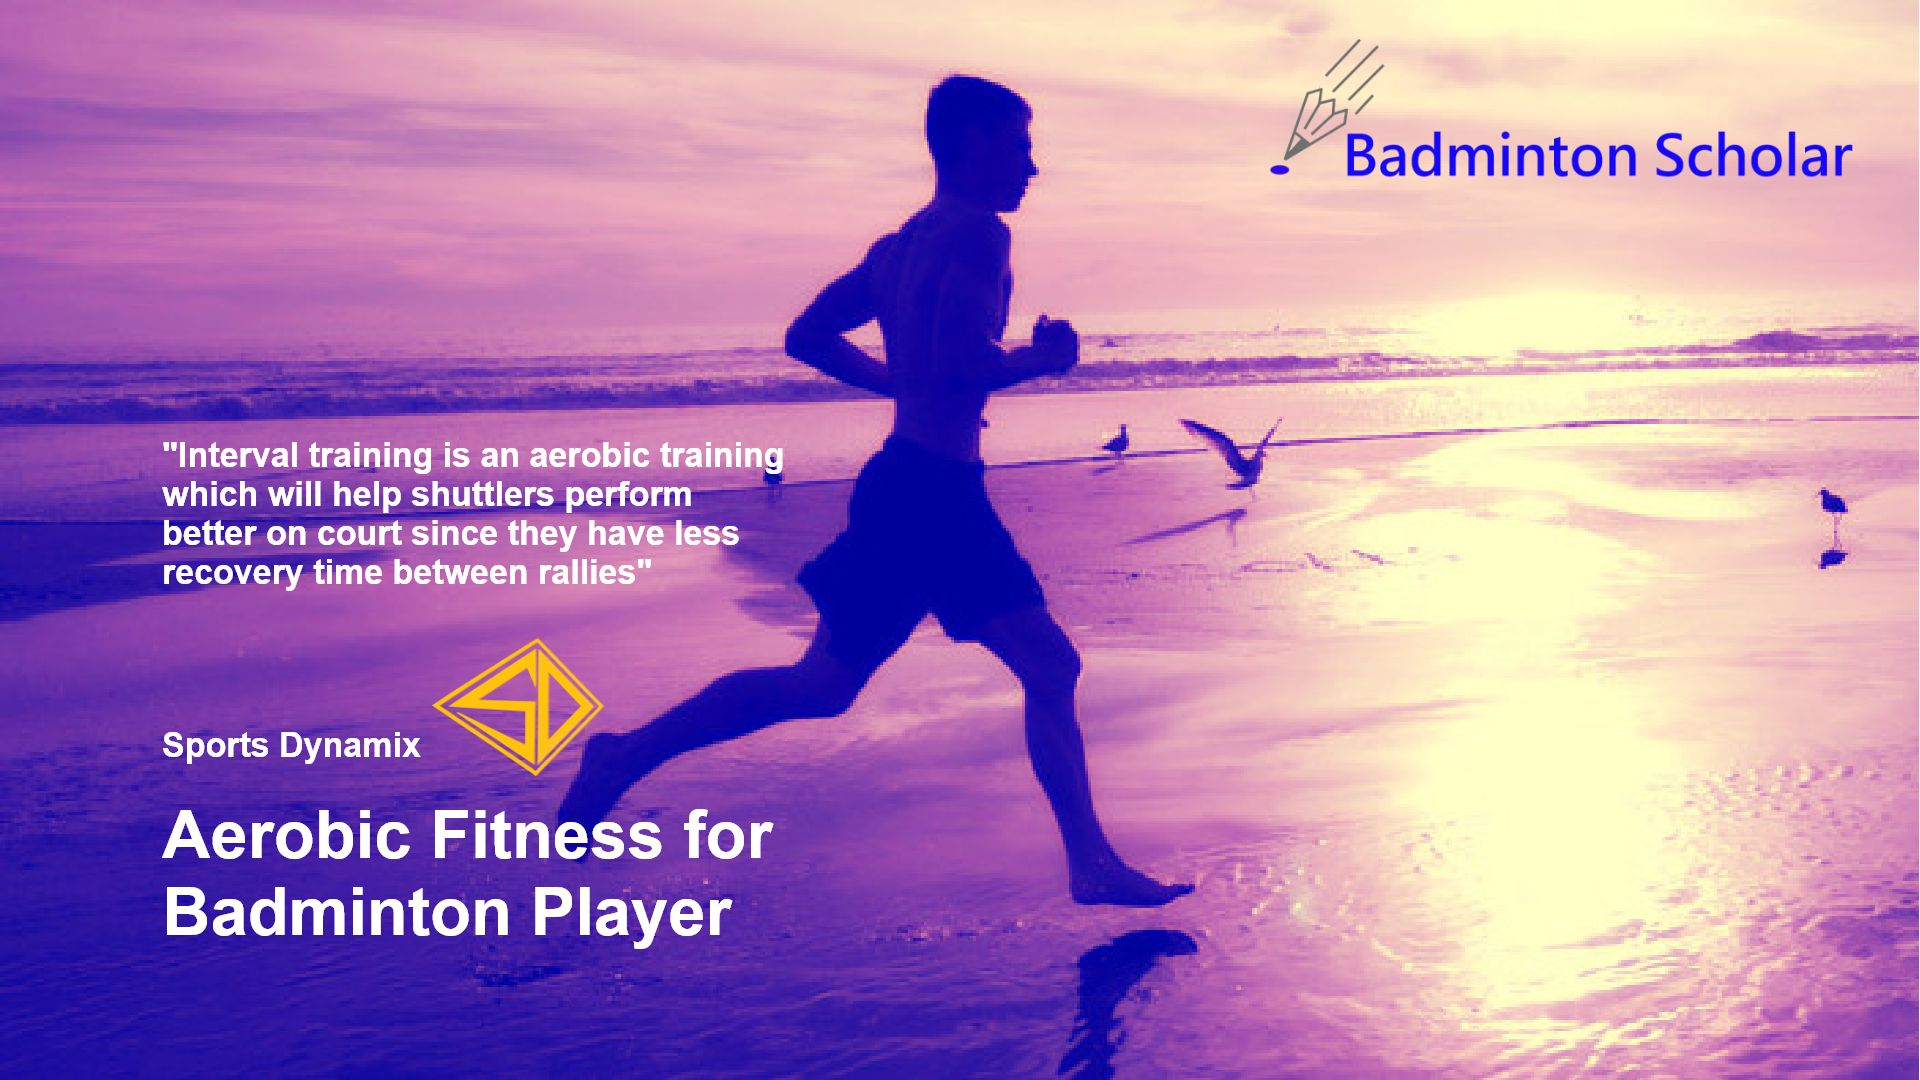 Aerobic (or endurance) fitness for Badminton Player